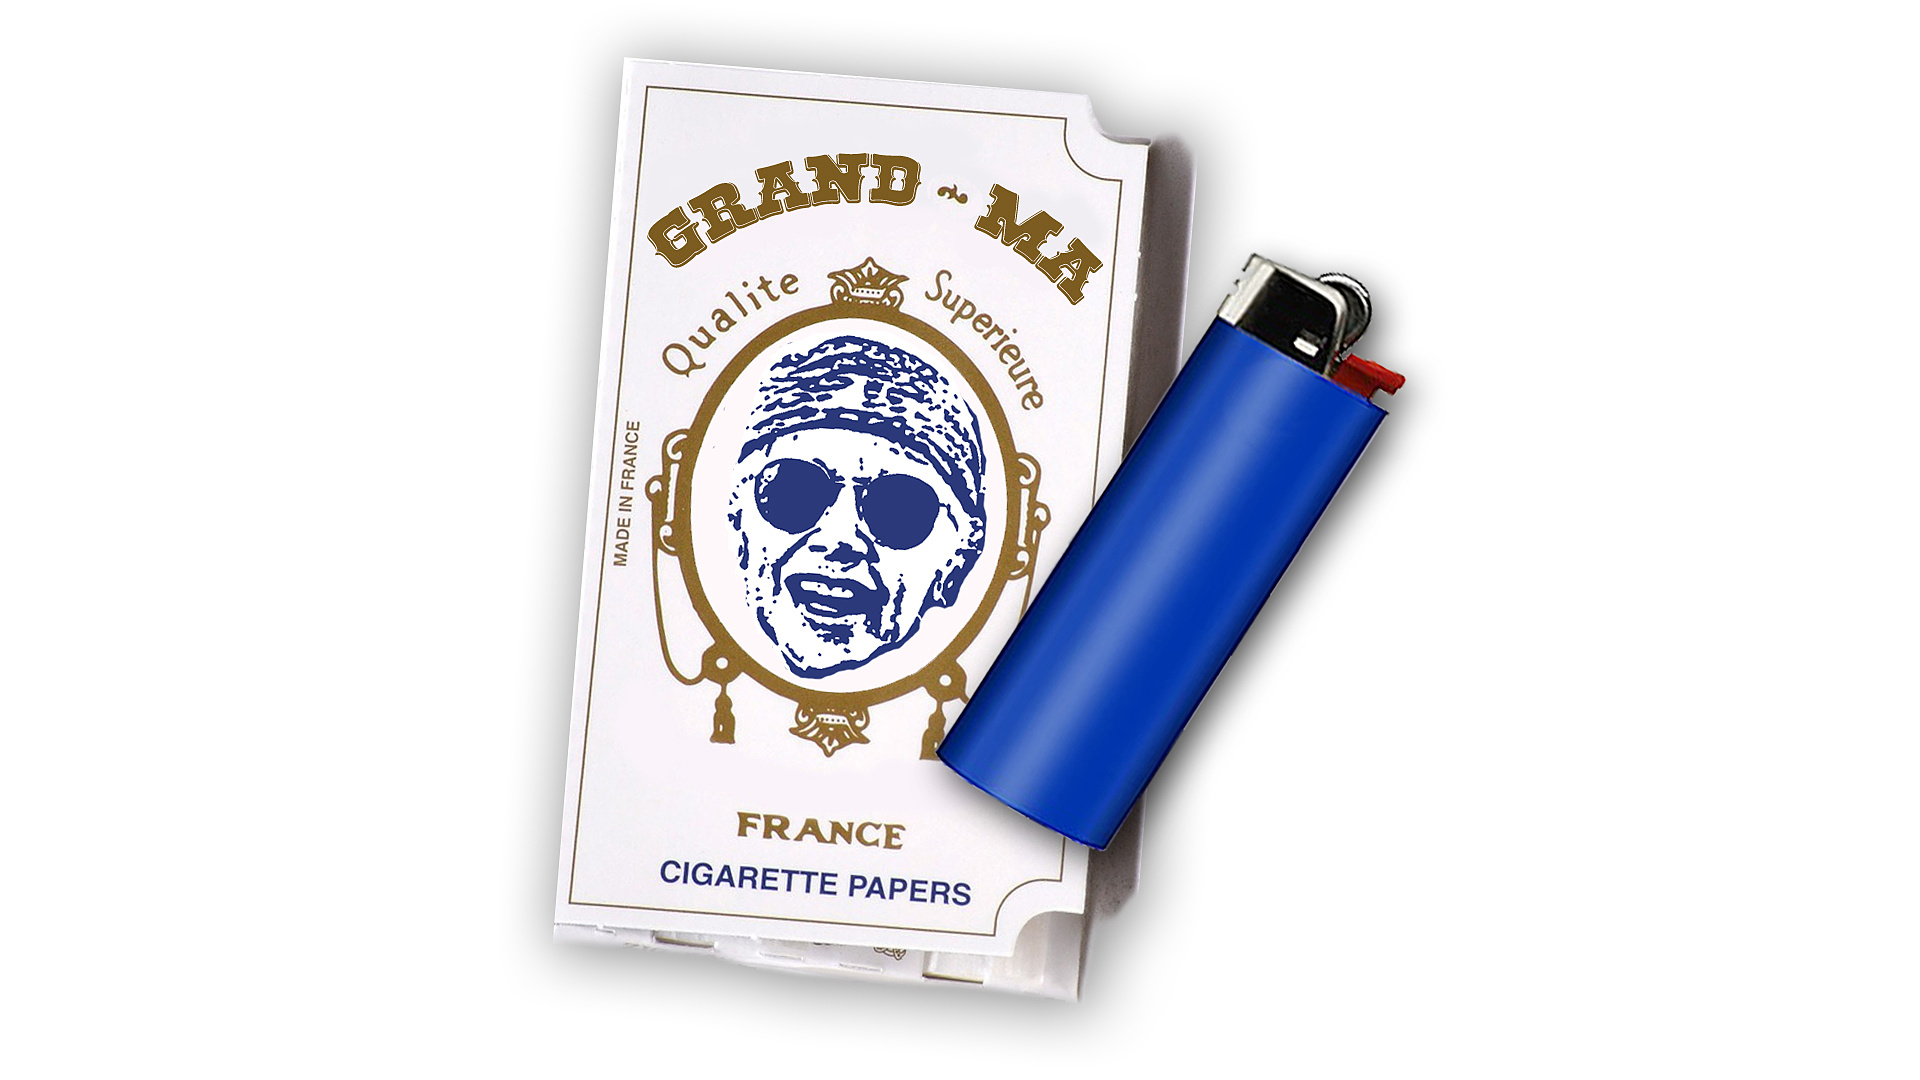 'GRAND-MA' Rolling Papers